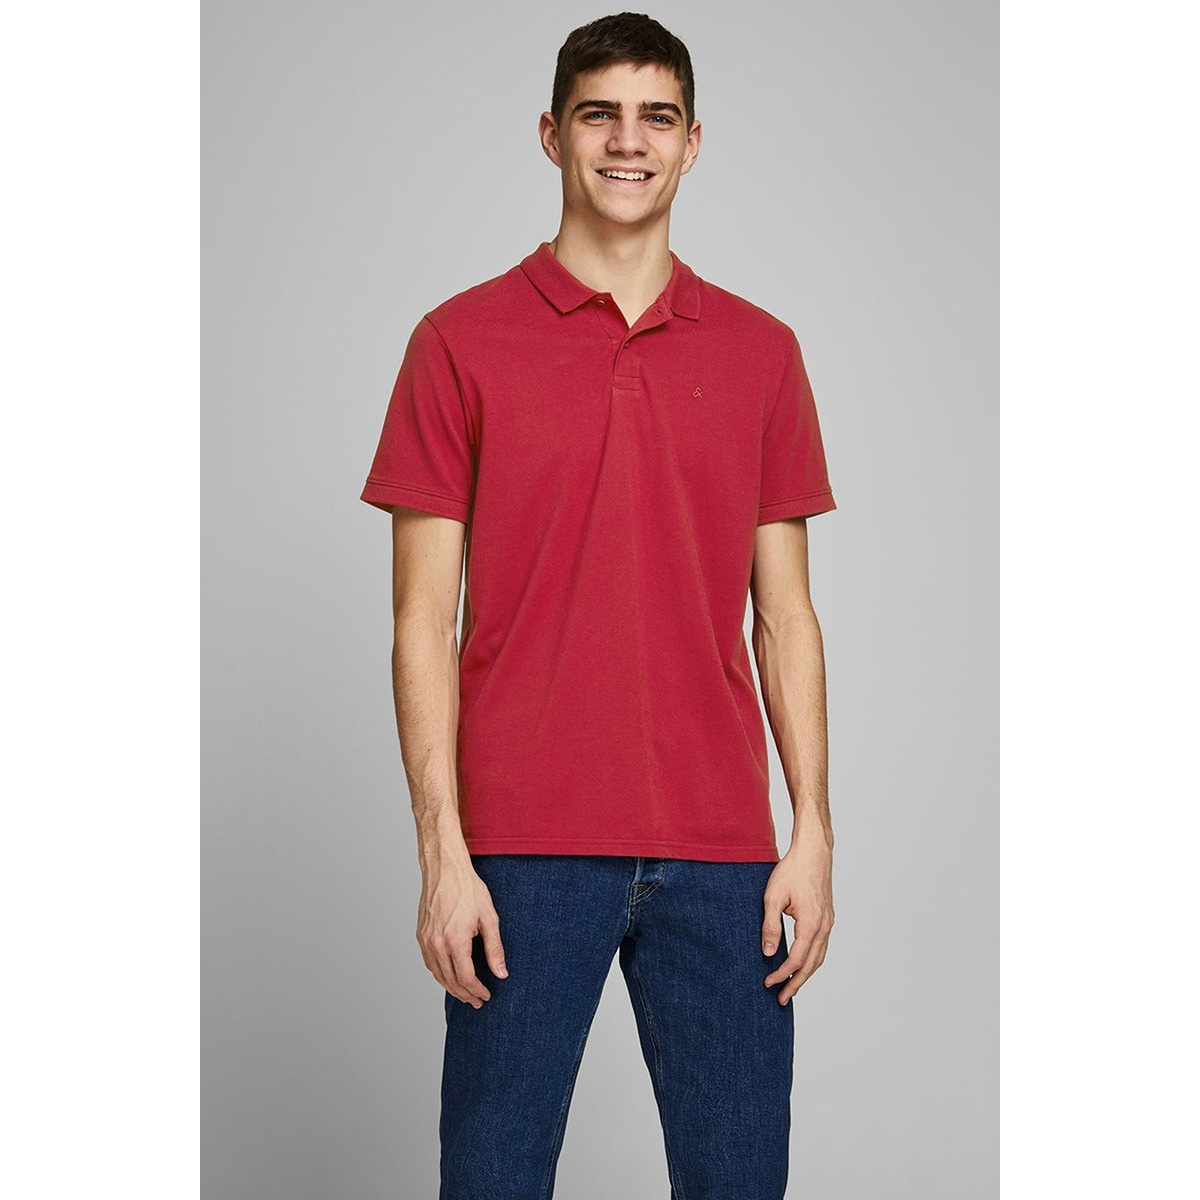 jjebasic polo ss noos 12136516 jack & jones polo rio red/slim fit